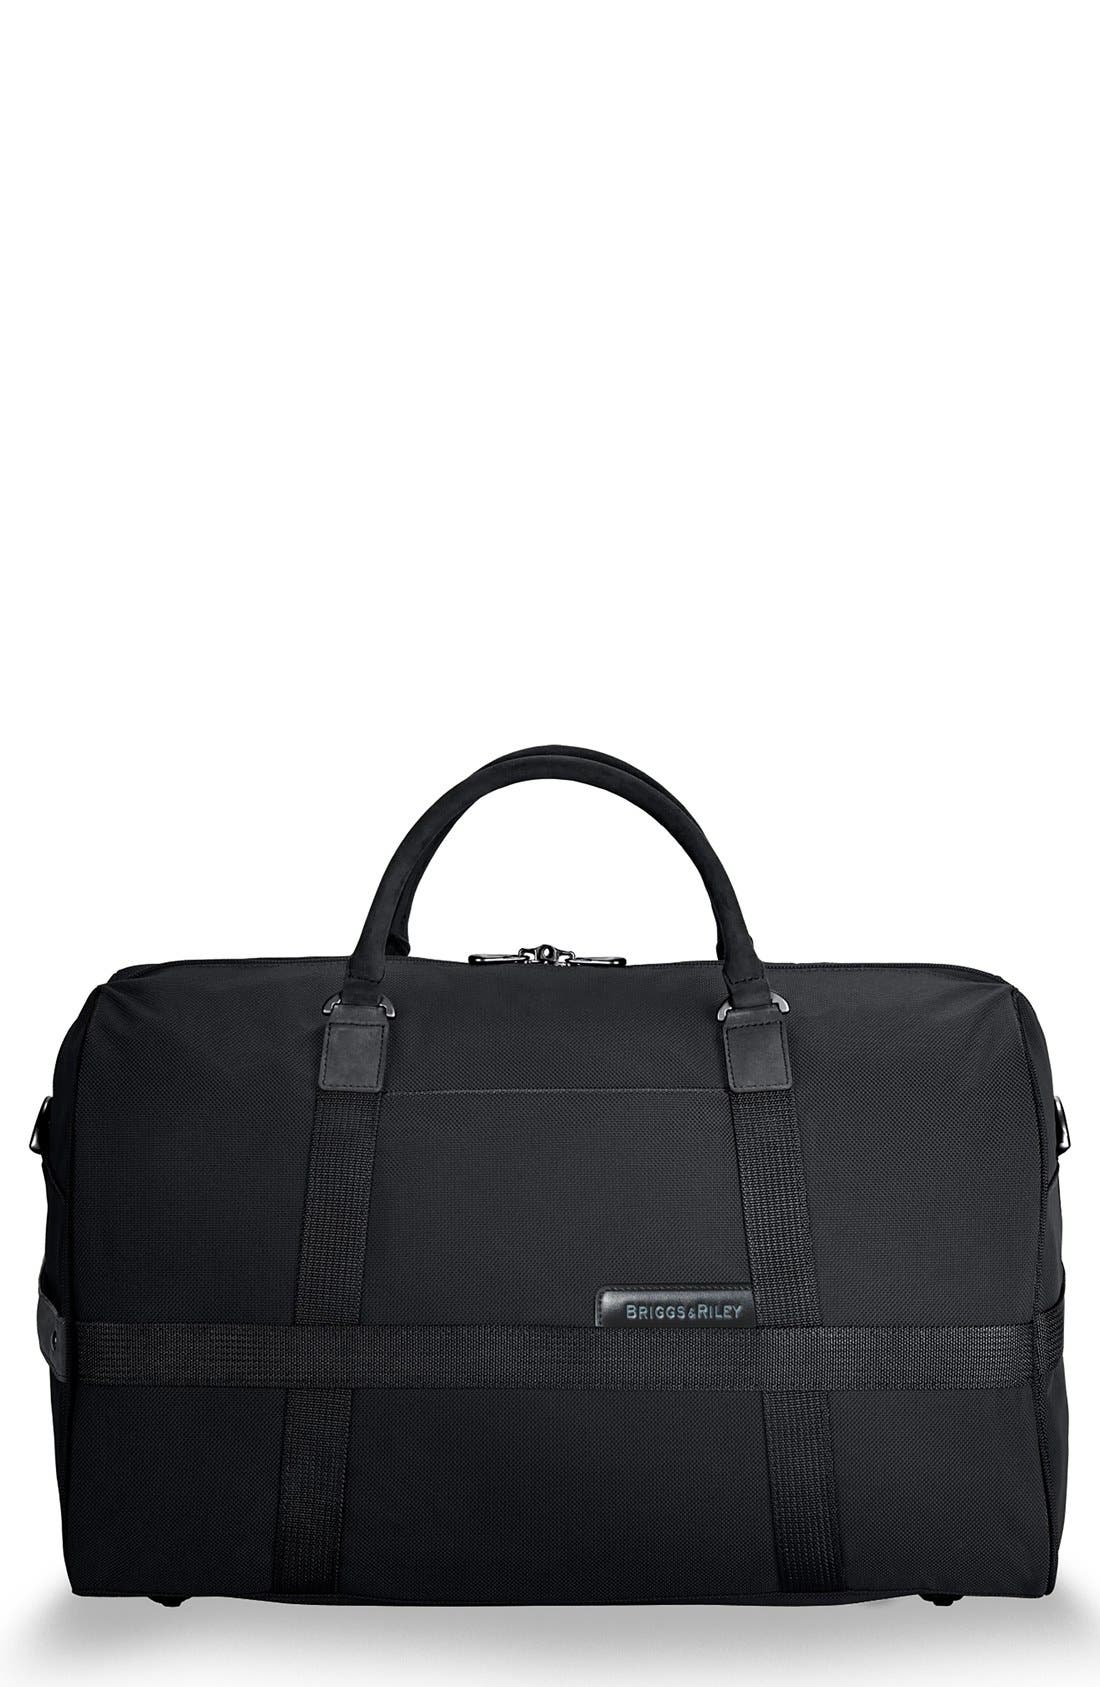 Main Image - Briggs & Riley 'Baseline - Medium' Duffel Bag (22 Inch)